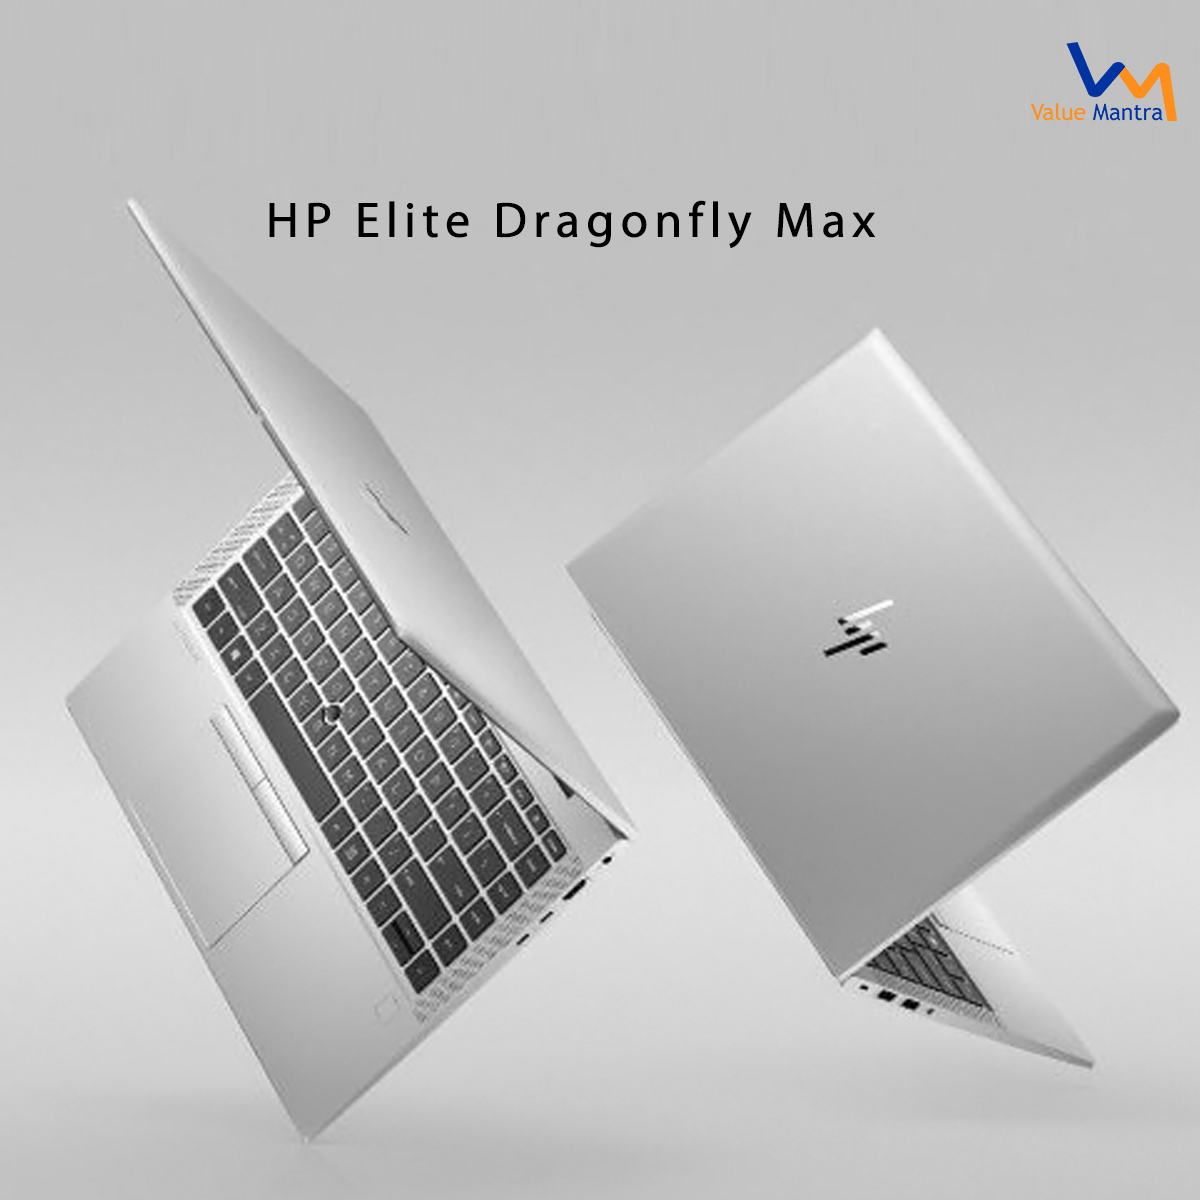 Best Professional laptop (2021) – HP Elite Dragonfly Max